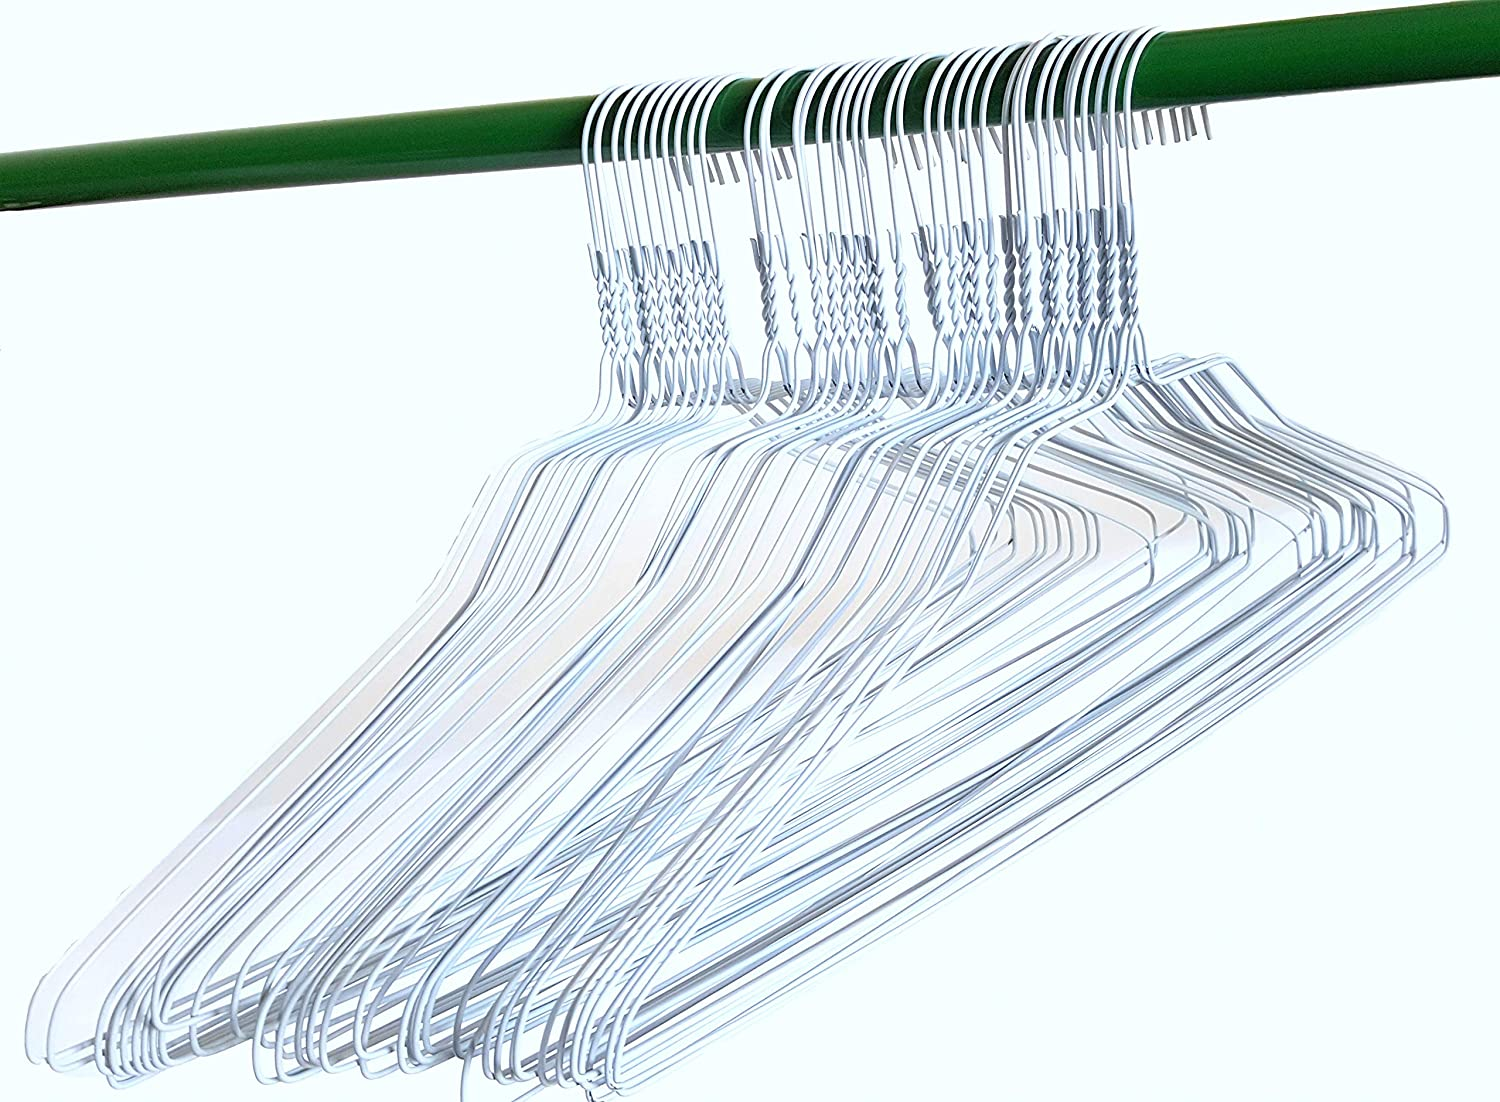 50 Wire Hangers 18 Standard White Clothes Hangers Homeland Goods